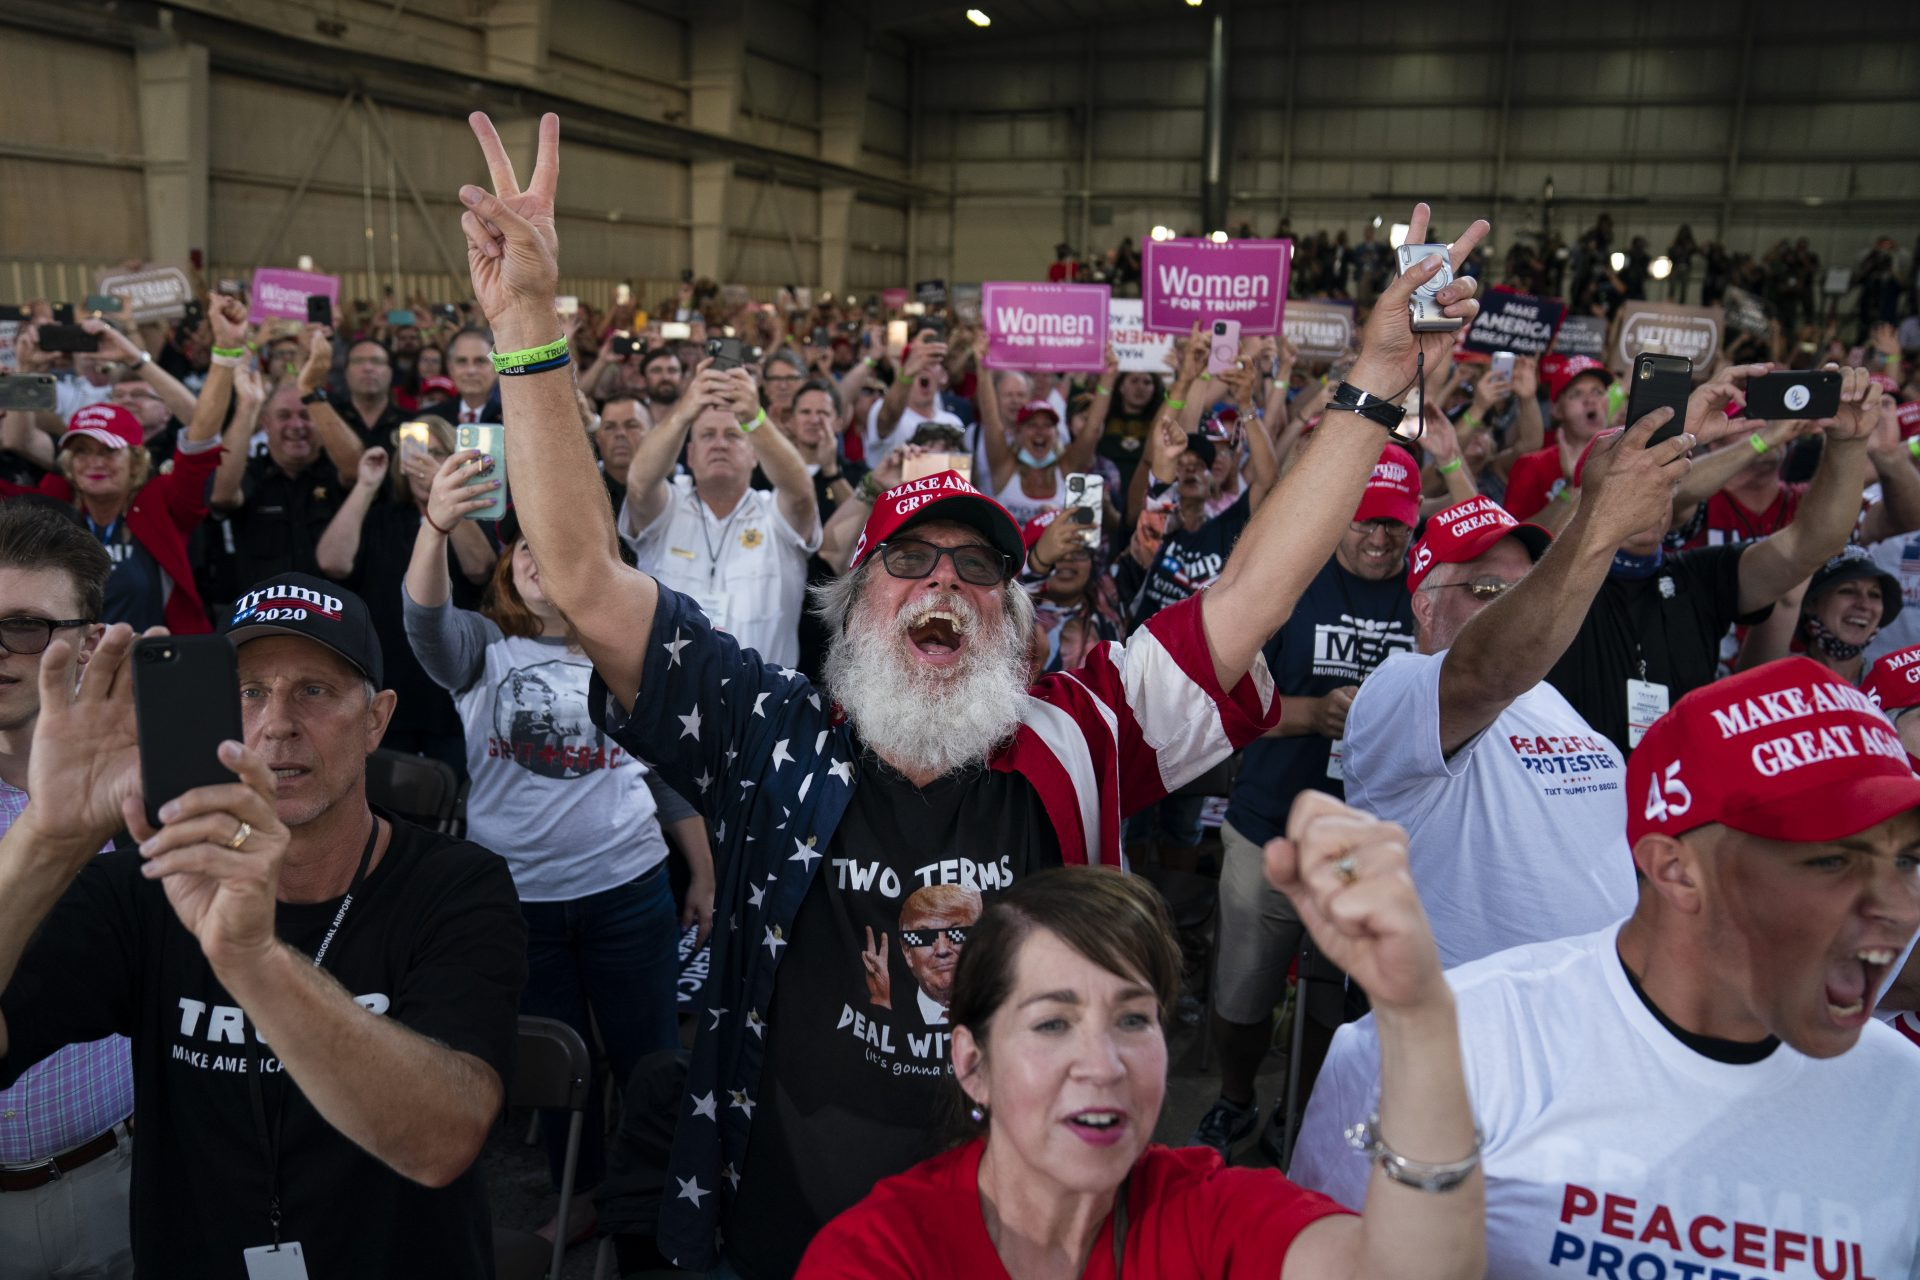 Supporters of President Donald Trump cheer as he arrives to speak during a campaign rally at Arnold Palmer Regional Airport, Thursday, Sept. 3, 2020, in Latrobe, Pa.